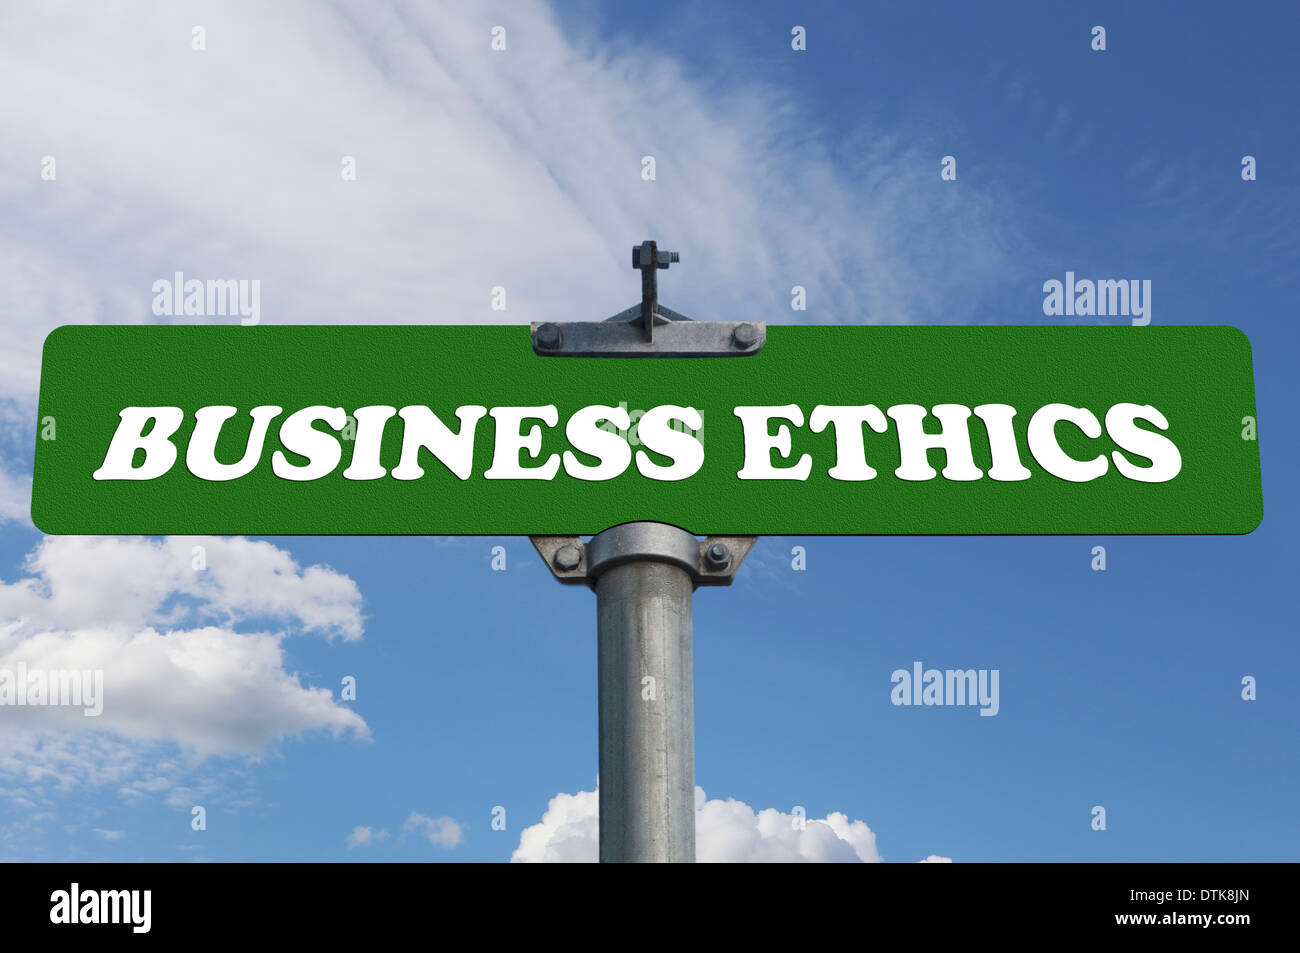 Business ethics road sign - Stock Image